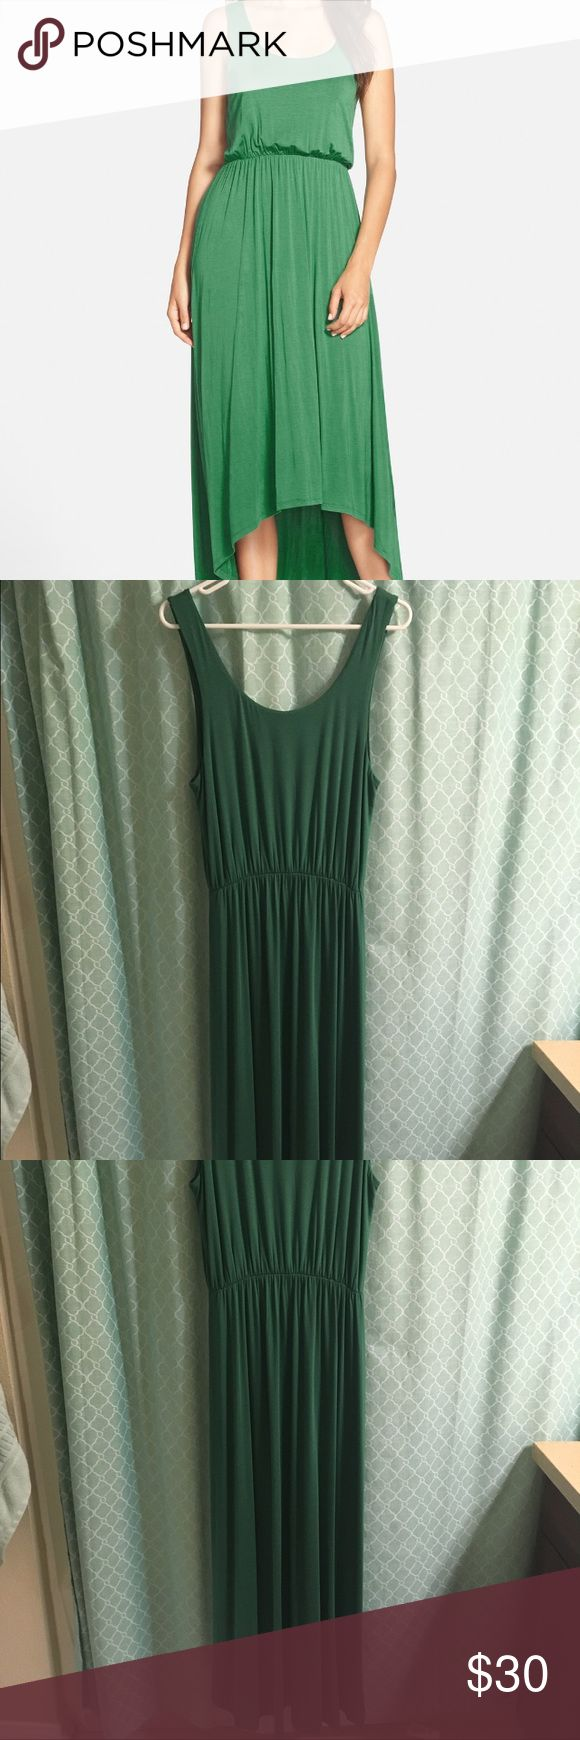 """Felicity & Coco Dress (Nordstrom Exclusive) High/Low hem jersey tank dress. Comfortable elasticized waistband and high/low hemline define the casual-chic silouette of this soft jersey tank dress. 42"""" front length; 52 inch back length. Size medium. Excellent condition. Kelly green color. Perfect dress for summer! Felicity and Coco Dresses High Low"""